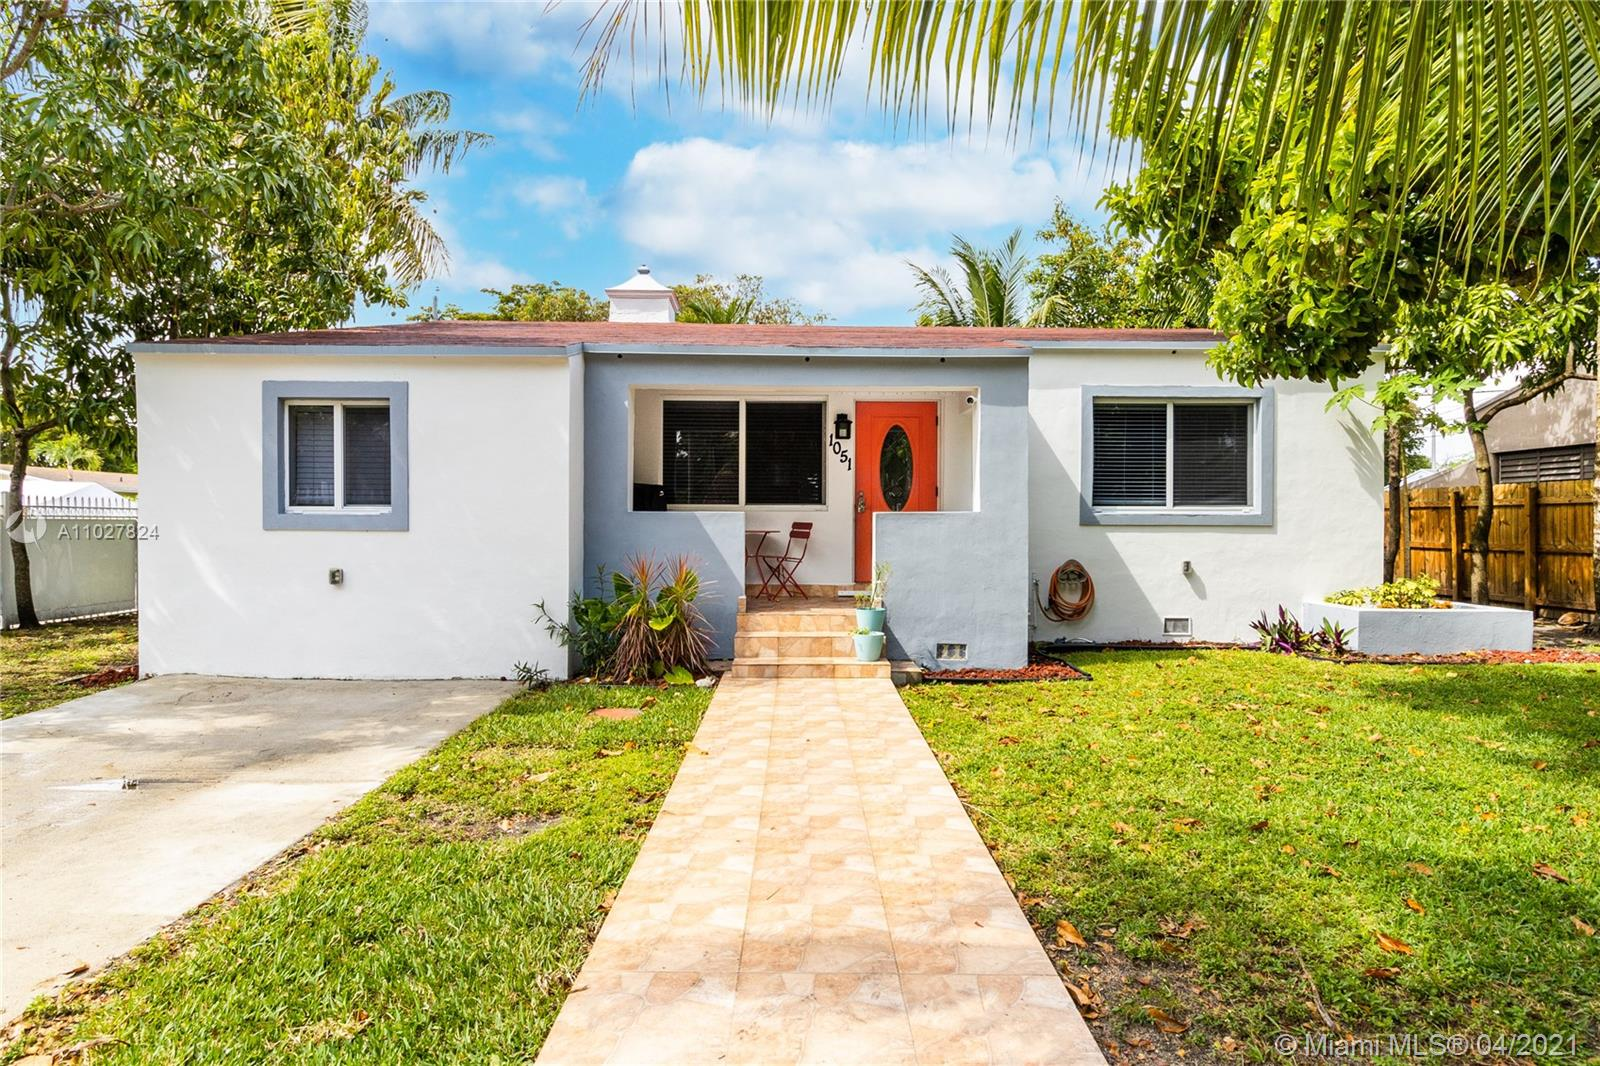 Details for 1051 45th St, Miami, FL 33127